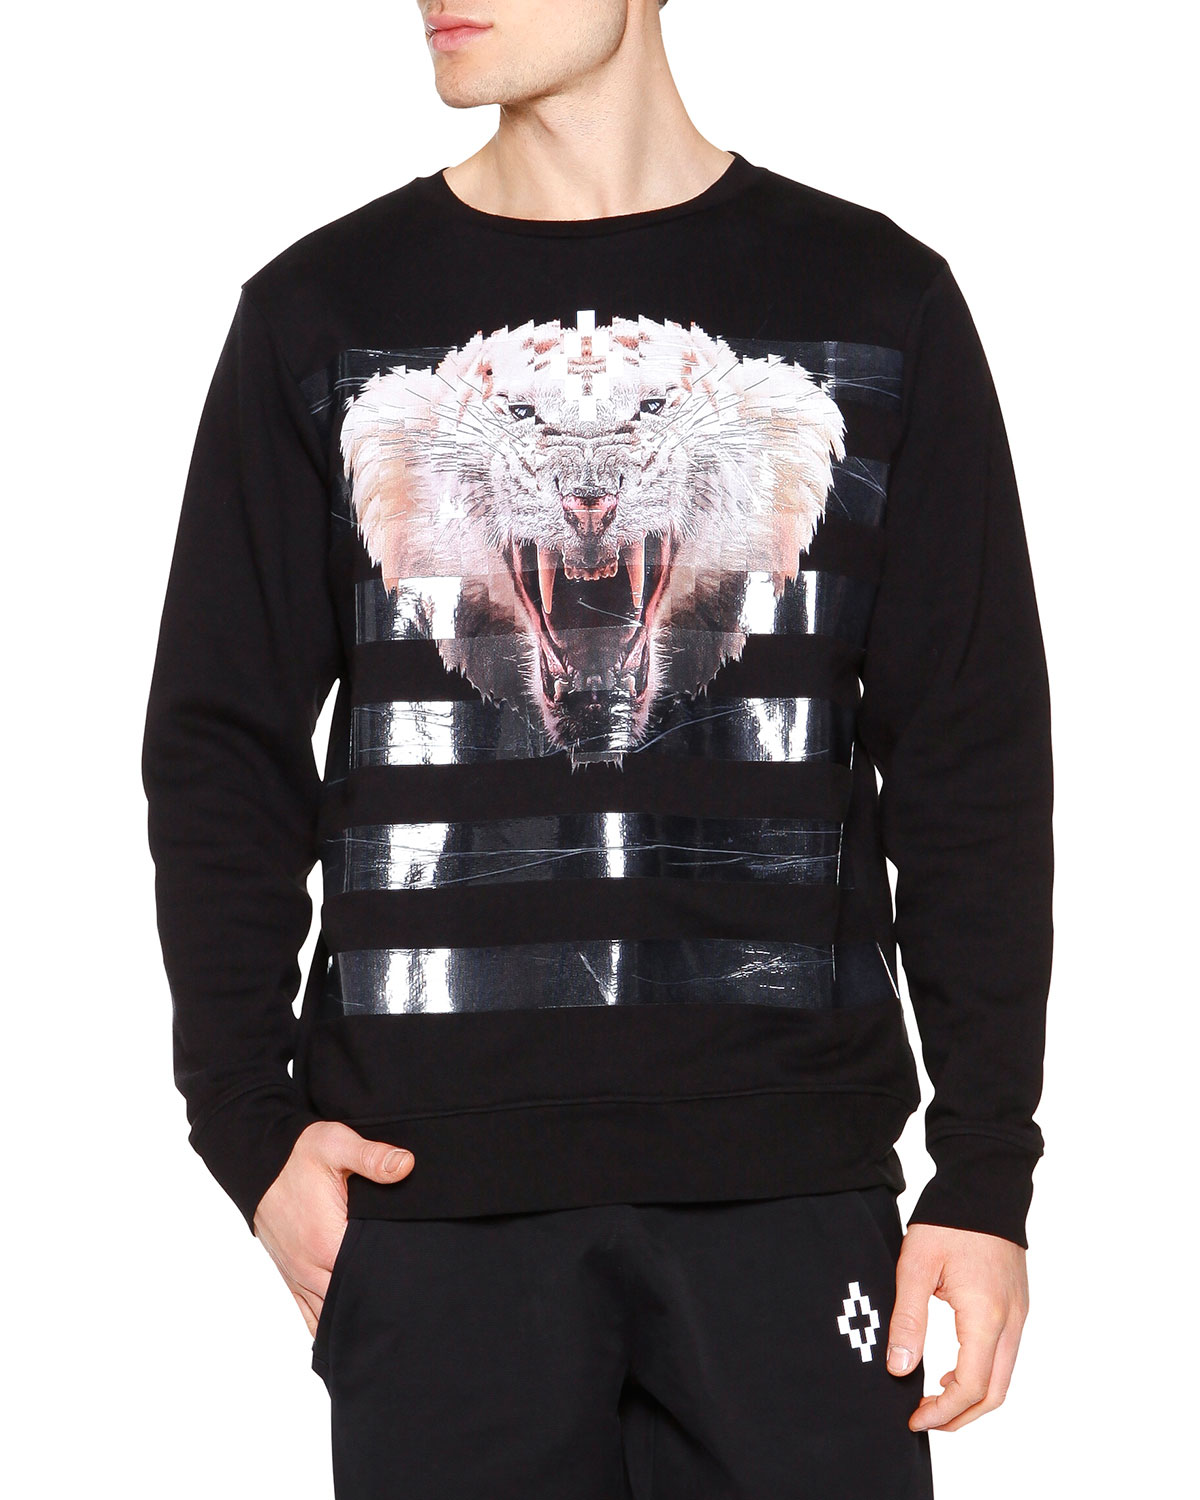 Tiger Graphic Sweatshirt with Tape Stripes, Black